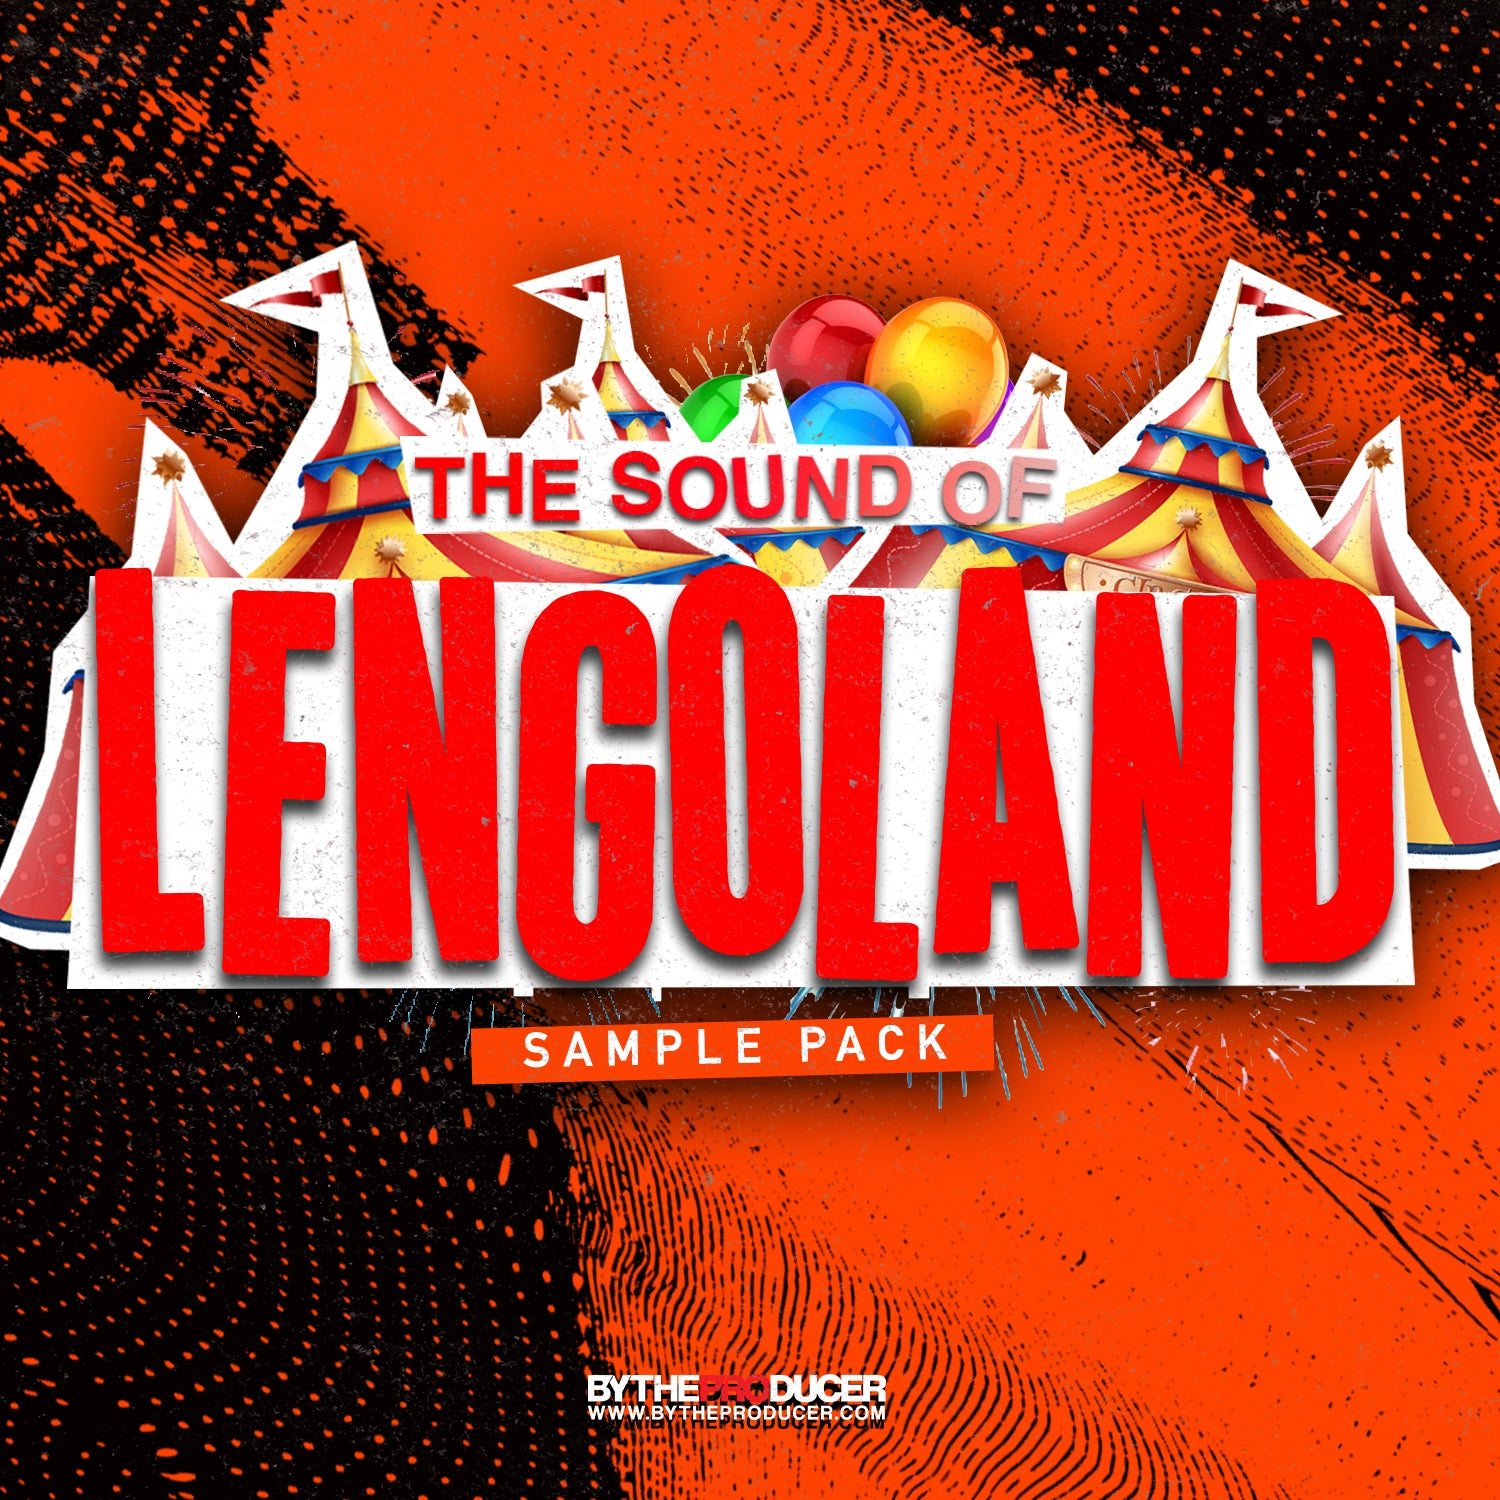 The Sound of Lengoland - Sample Pack (Official)